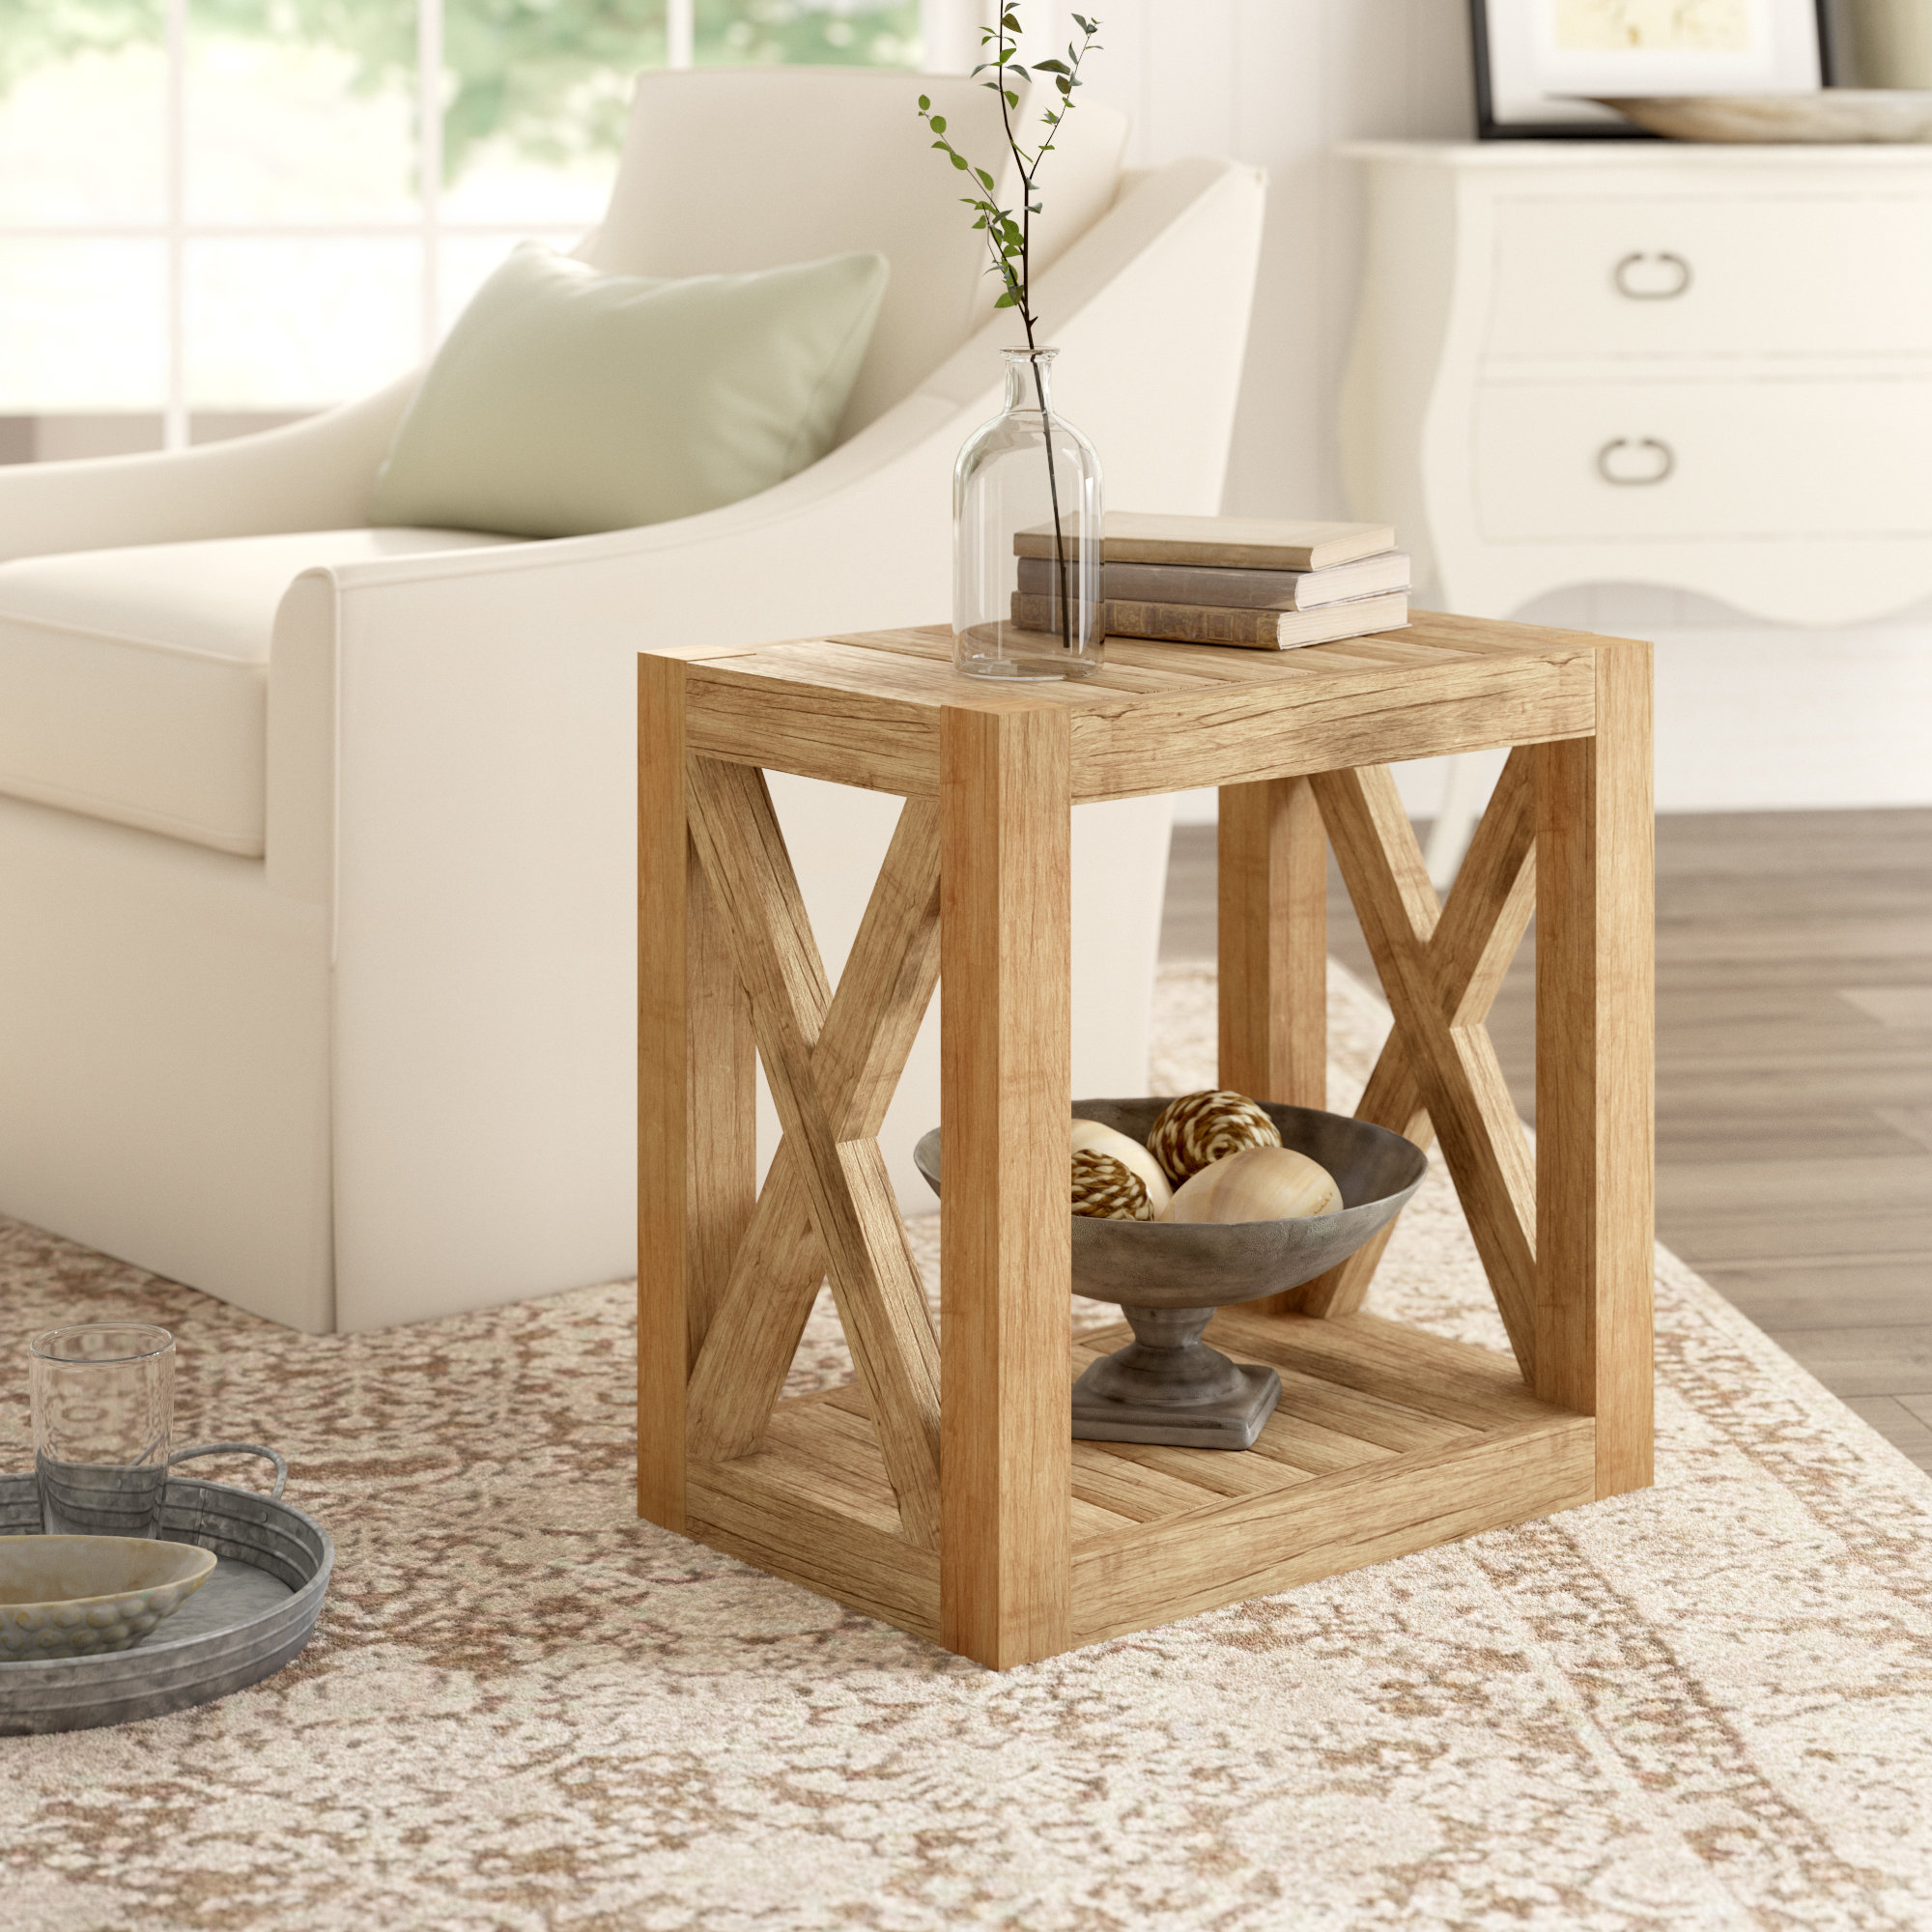 birch lane heritage wrightstown side table reviews room essentials metal patio accent teton high top pub set antique oak bedside tables ethan allen kitchen small end with shelves